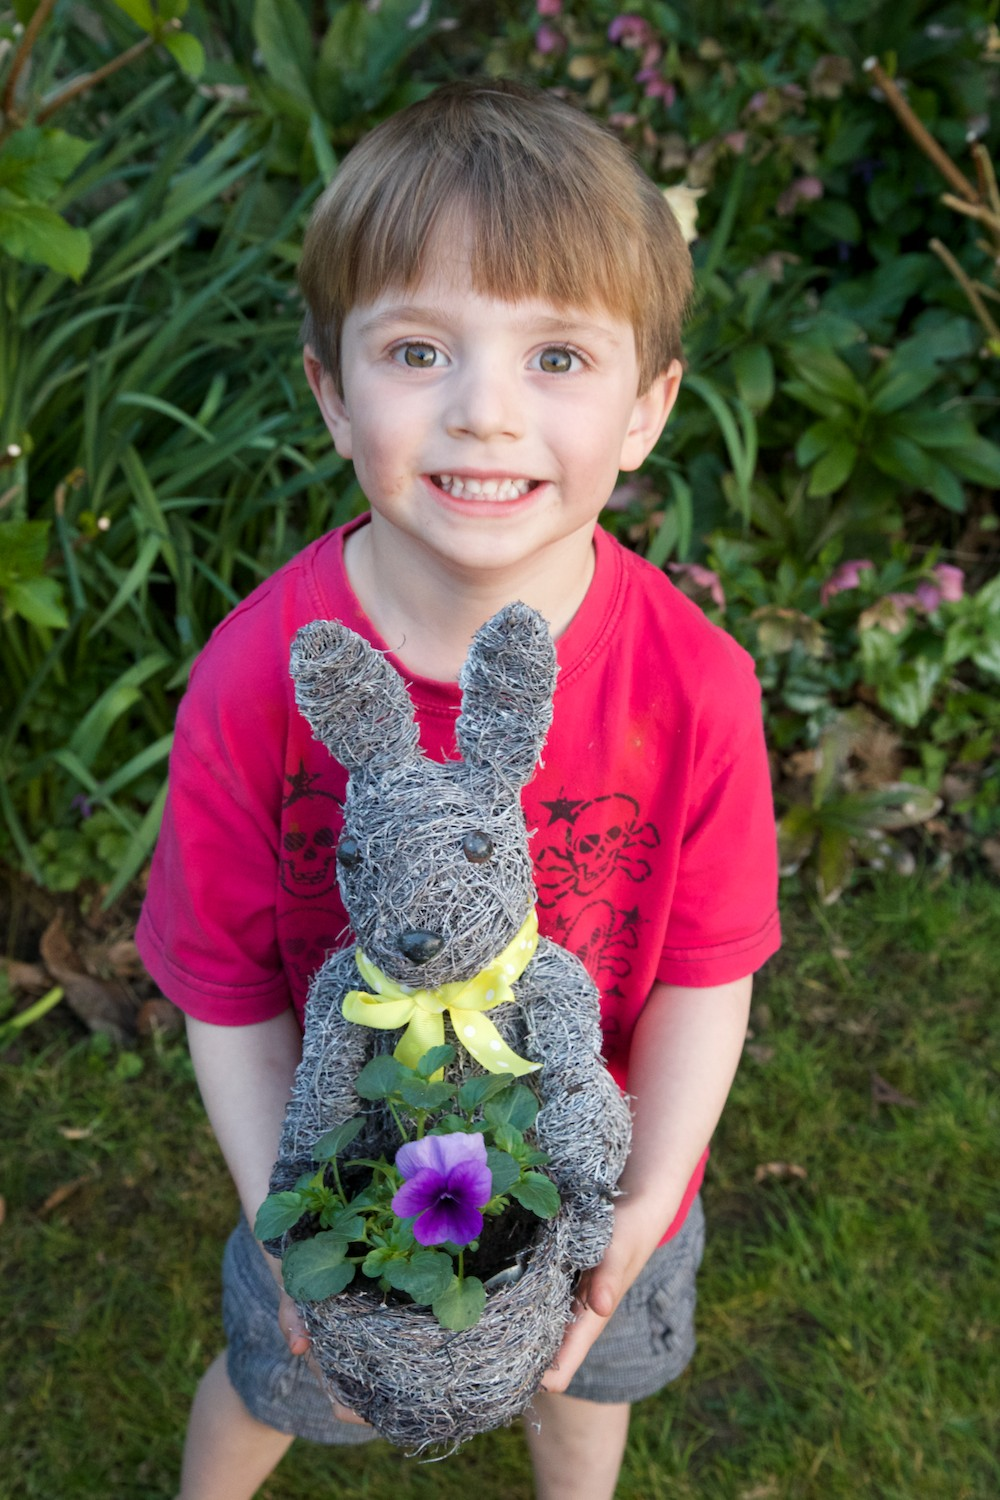 squires garden centre events for kids